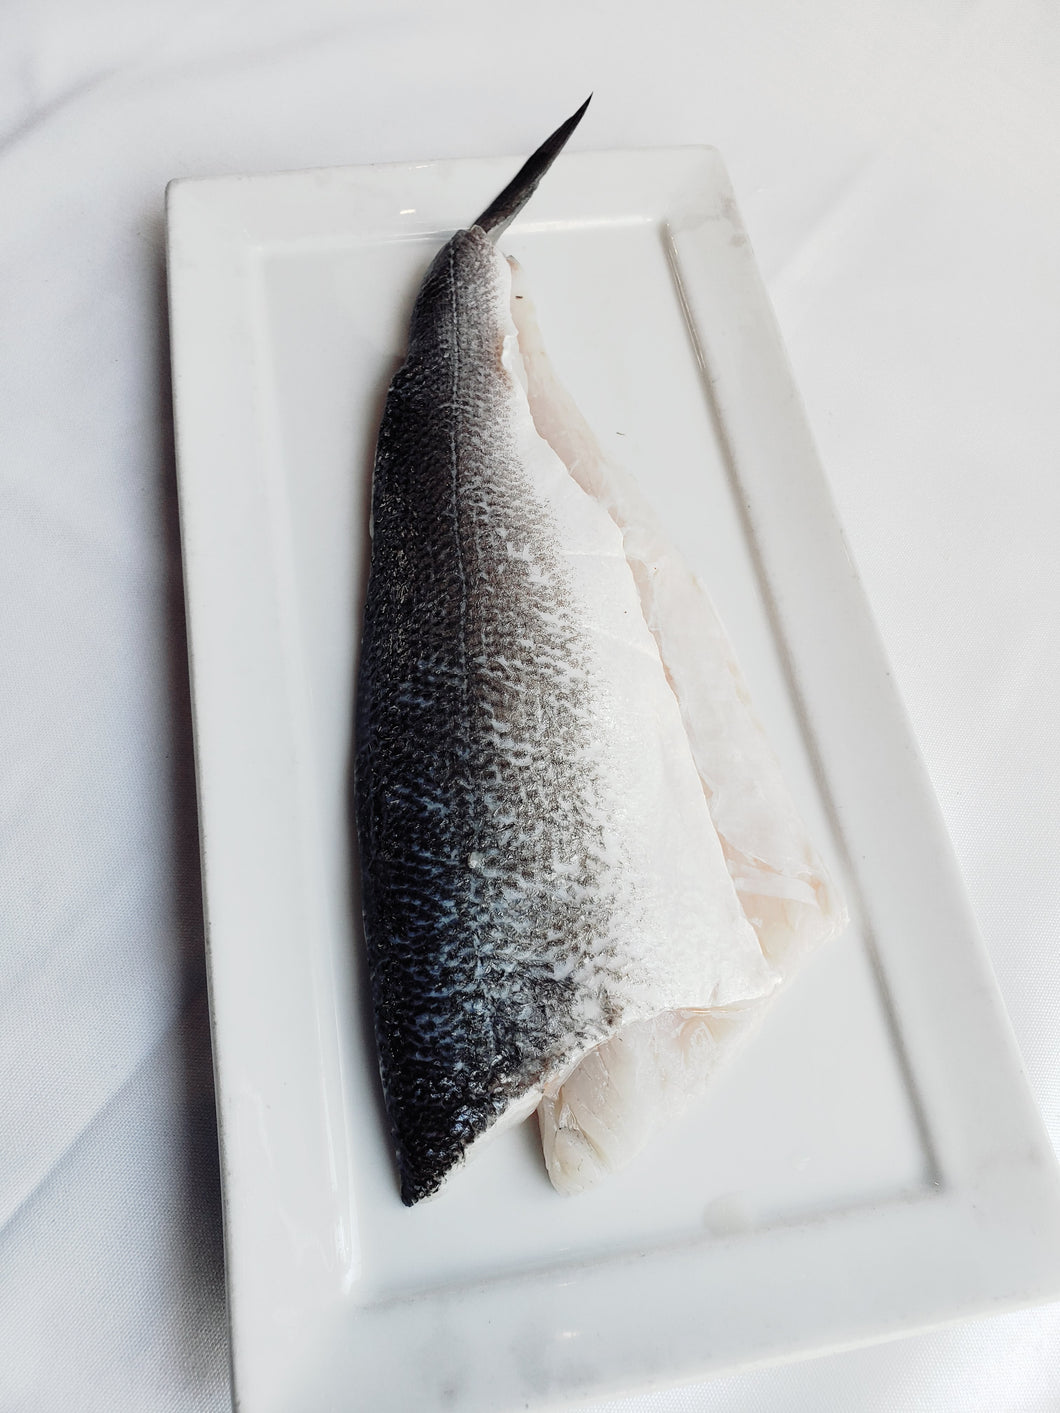 Fish, Branzino, Loup De Mer, Mediterranean Seabass, Whole, Skin On, Tail On, De-Boned (9oz)